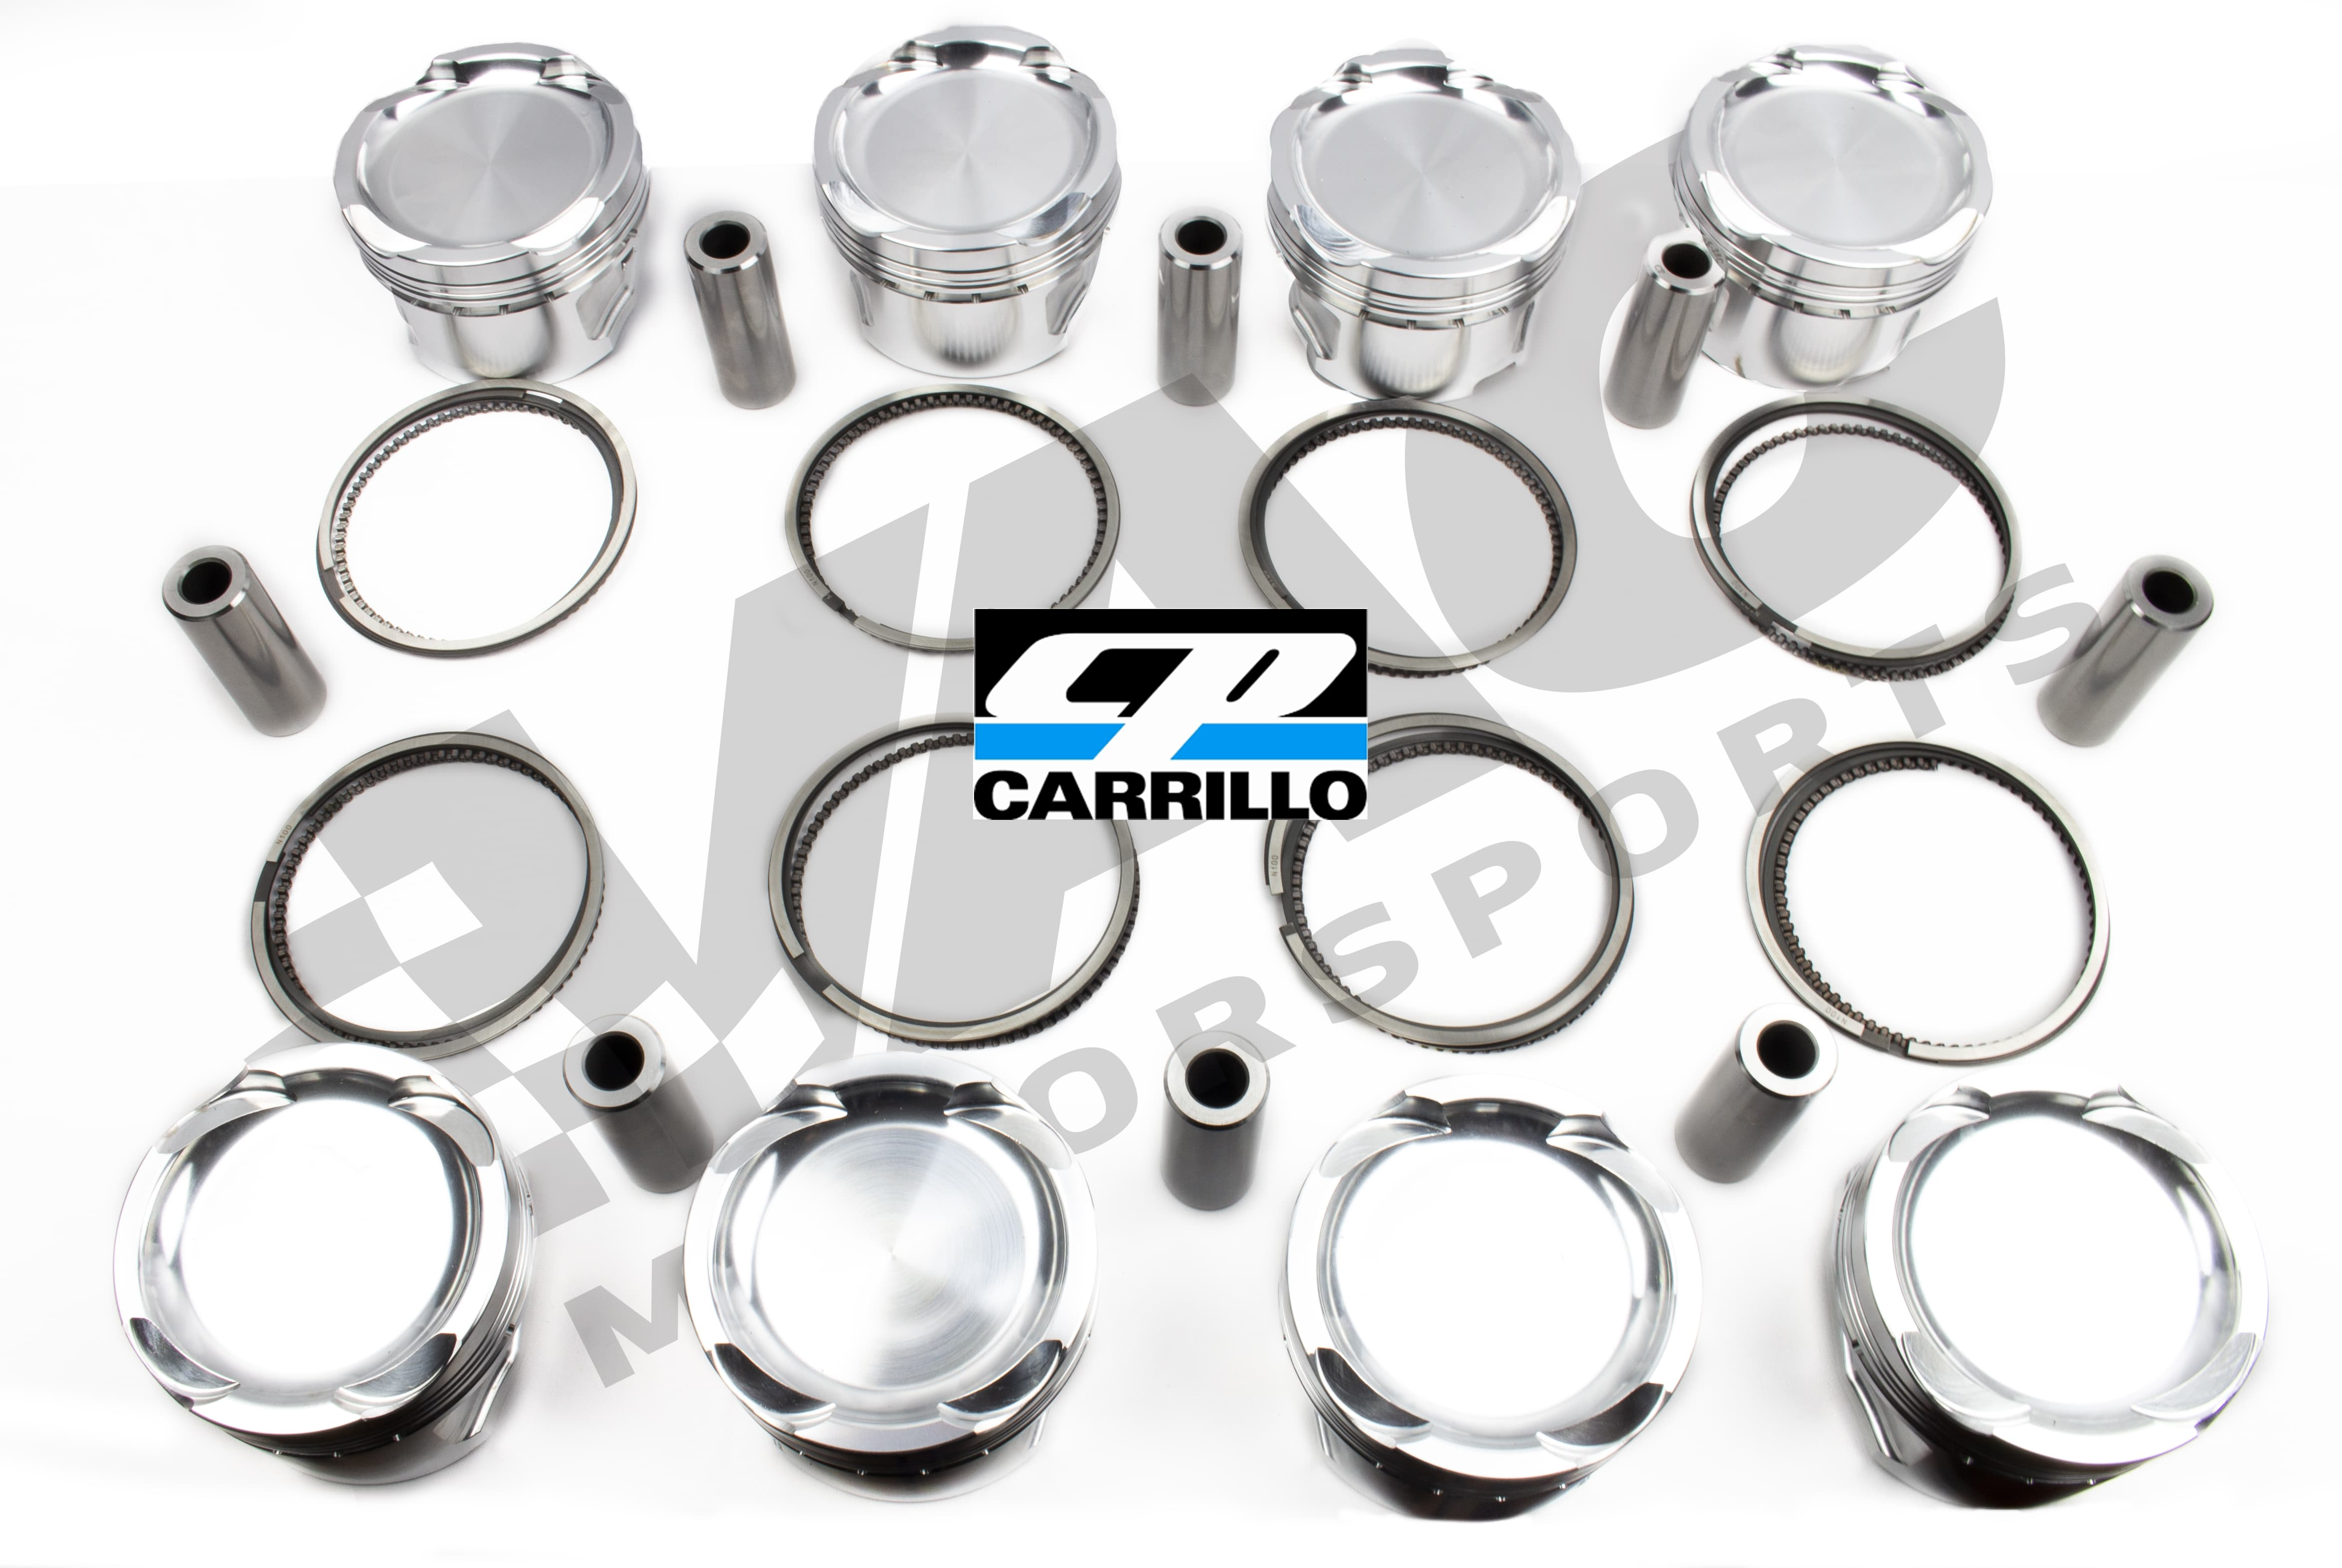 CP-Carrillo Forged Piston Set (Sleeved BMW S65 Stroker) SWATCH